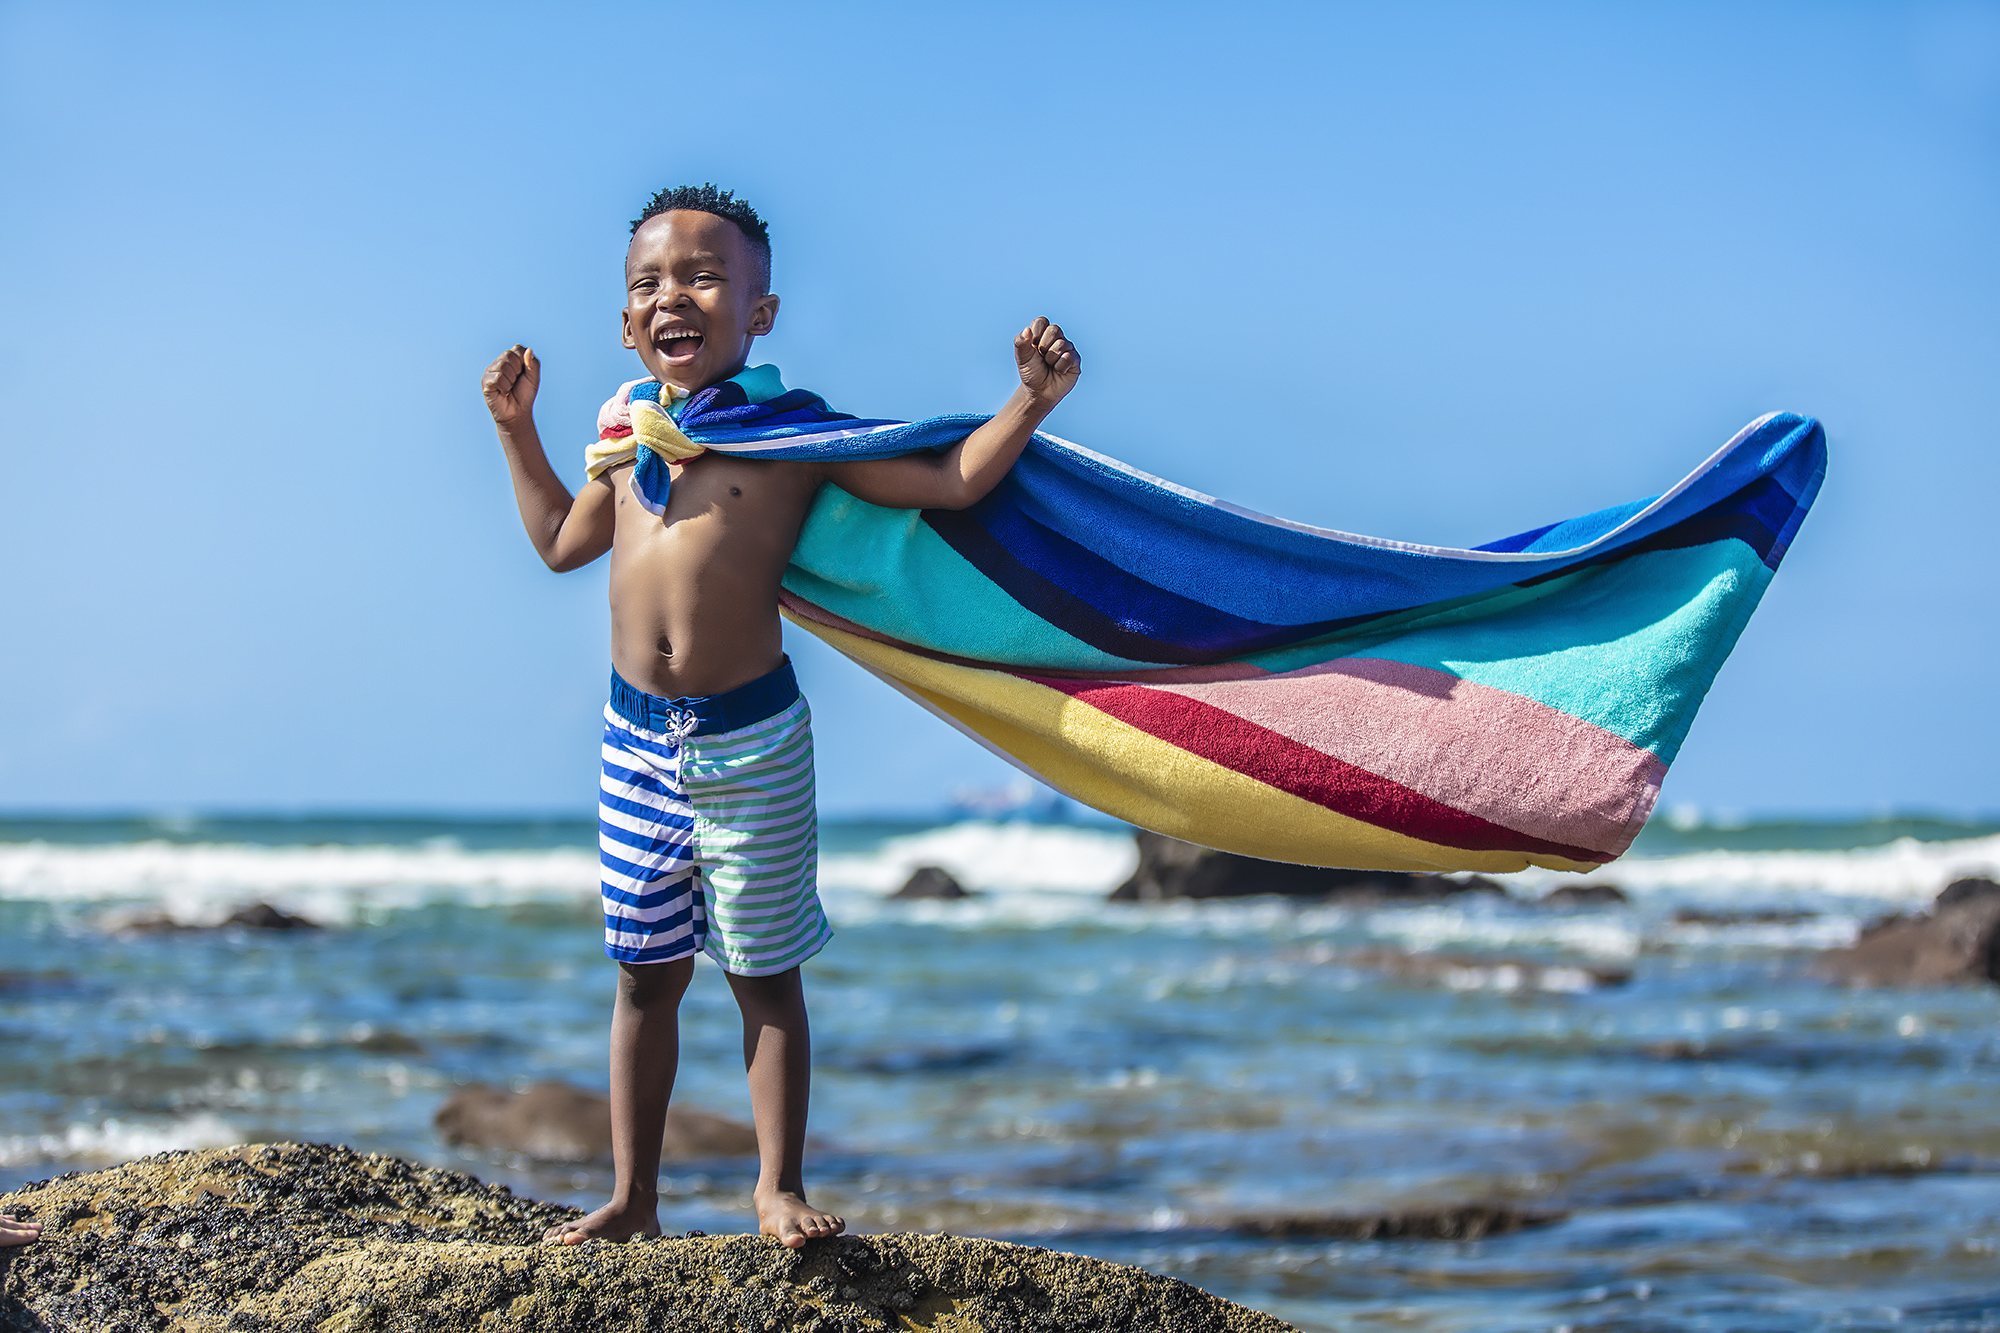 Image of boy on rock at the beach at the Beverly Hills Hotel in uMhlanga Rocks, Durban for  Tsogo Sun's Image Library & Content Library by Michelle Wastie Photography